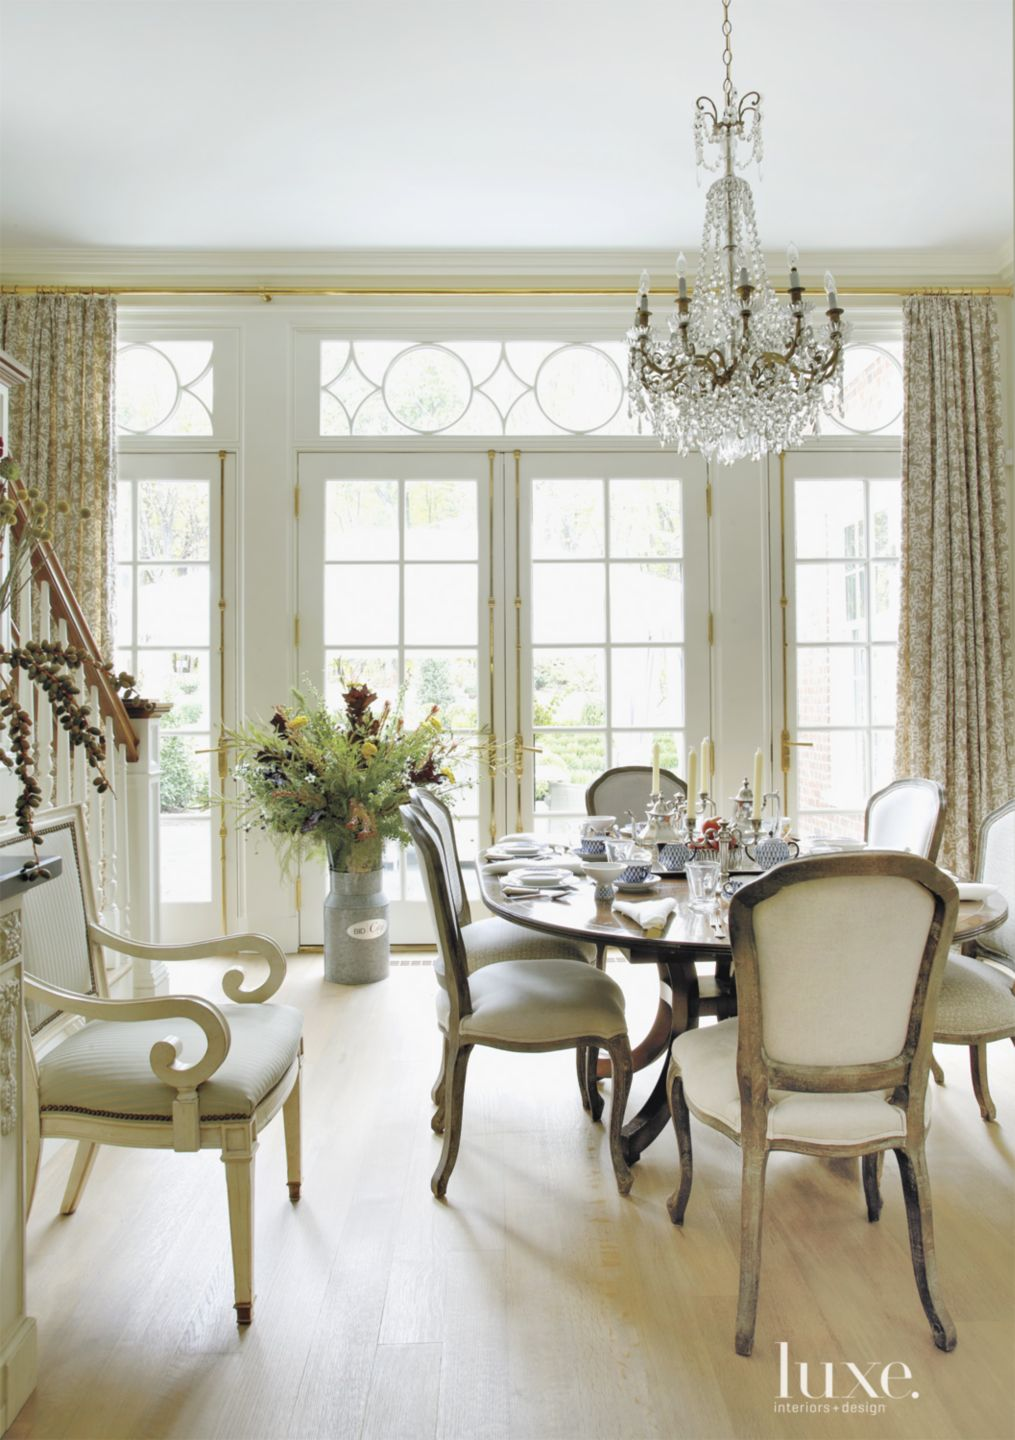 White Breakfast Area with Glass Chandelier